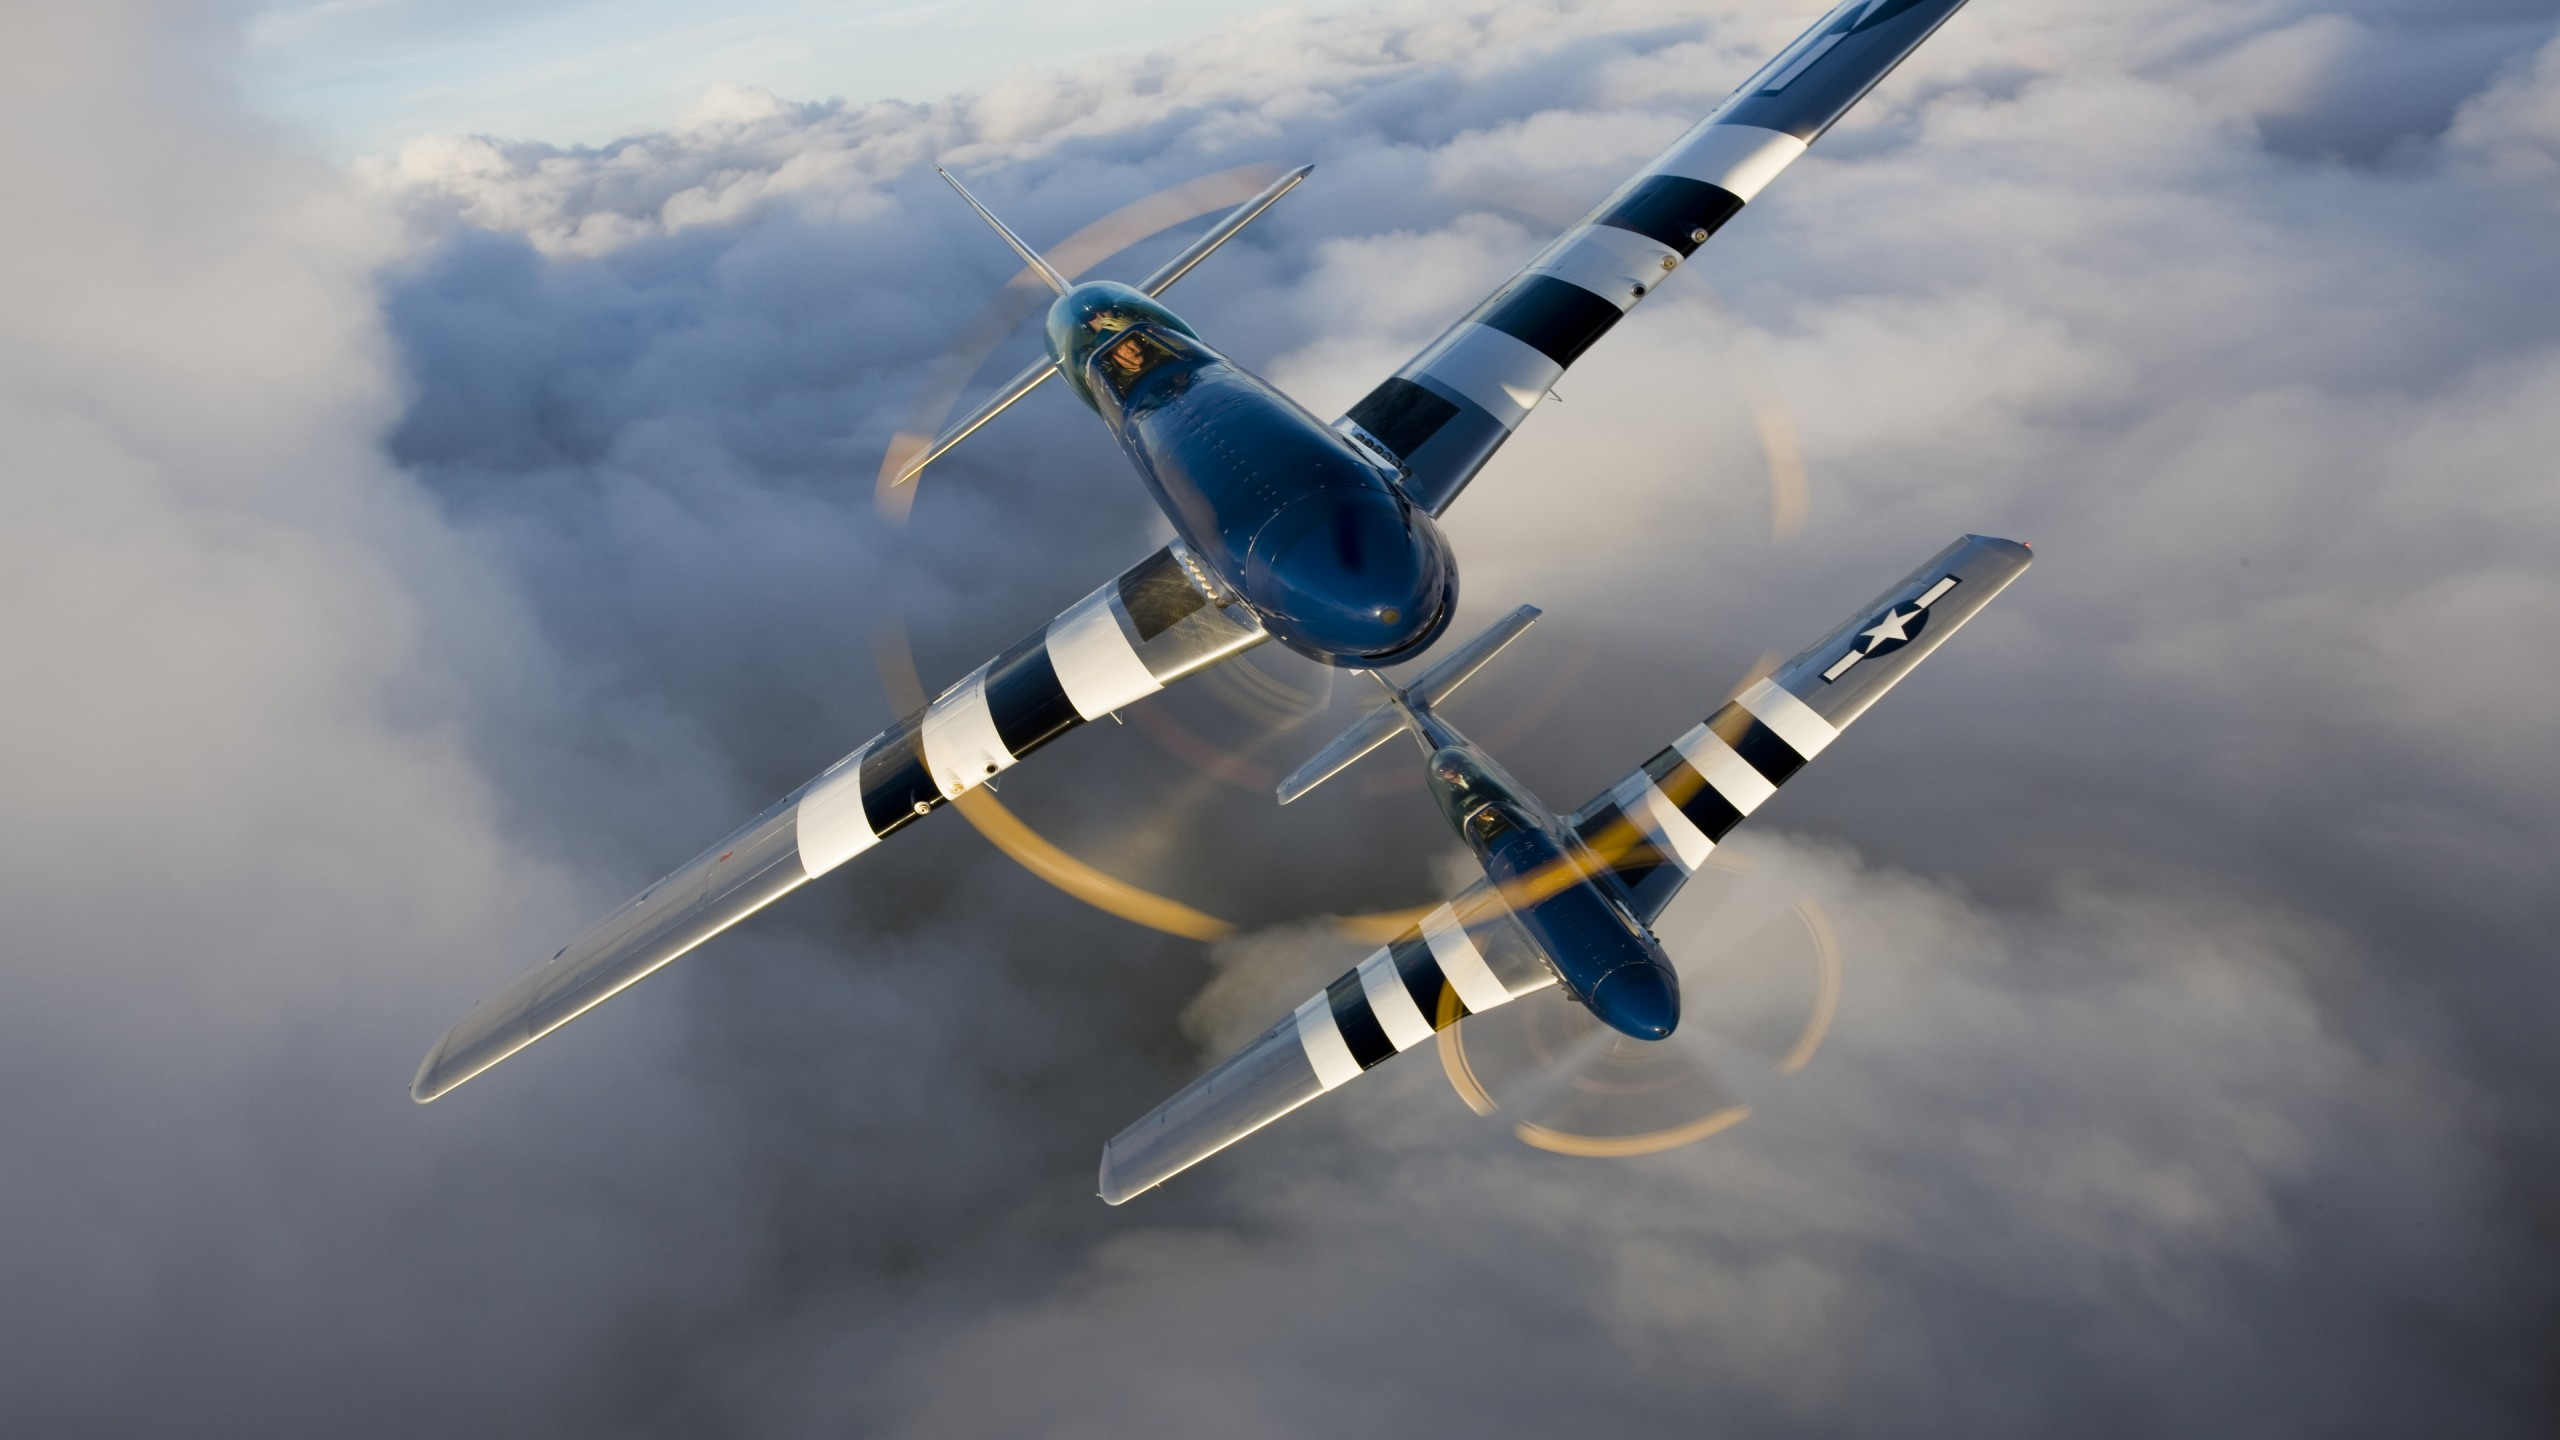 Download Us Army Wallpaper Hd 51: Wallpaper North American P-51 Mustang, Fighter, US Army